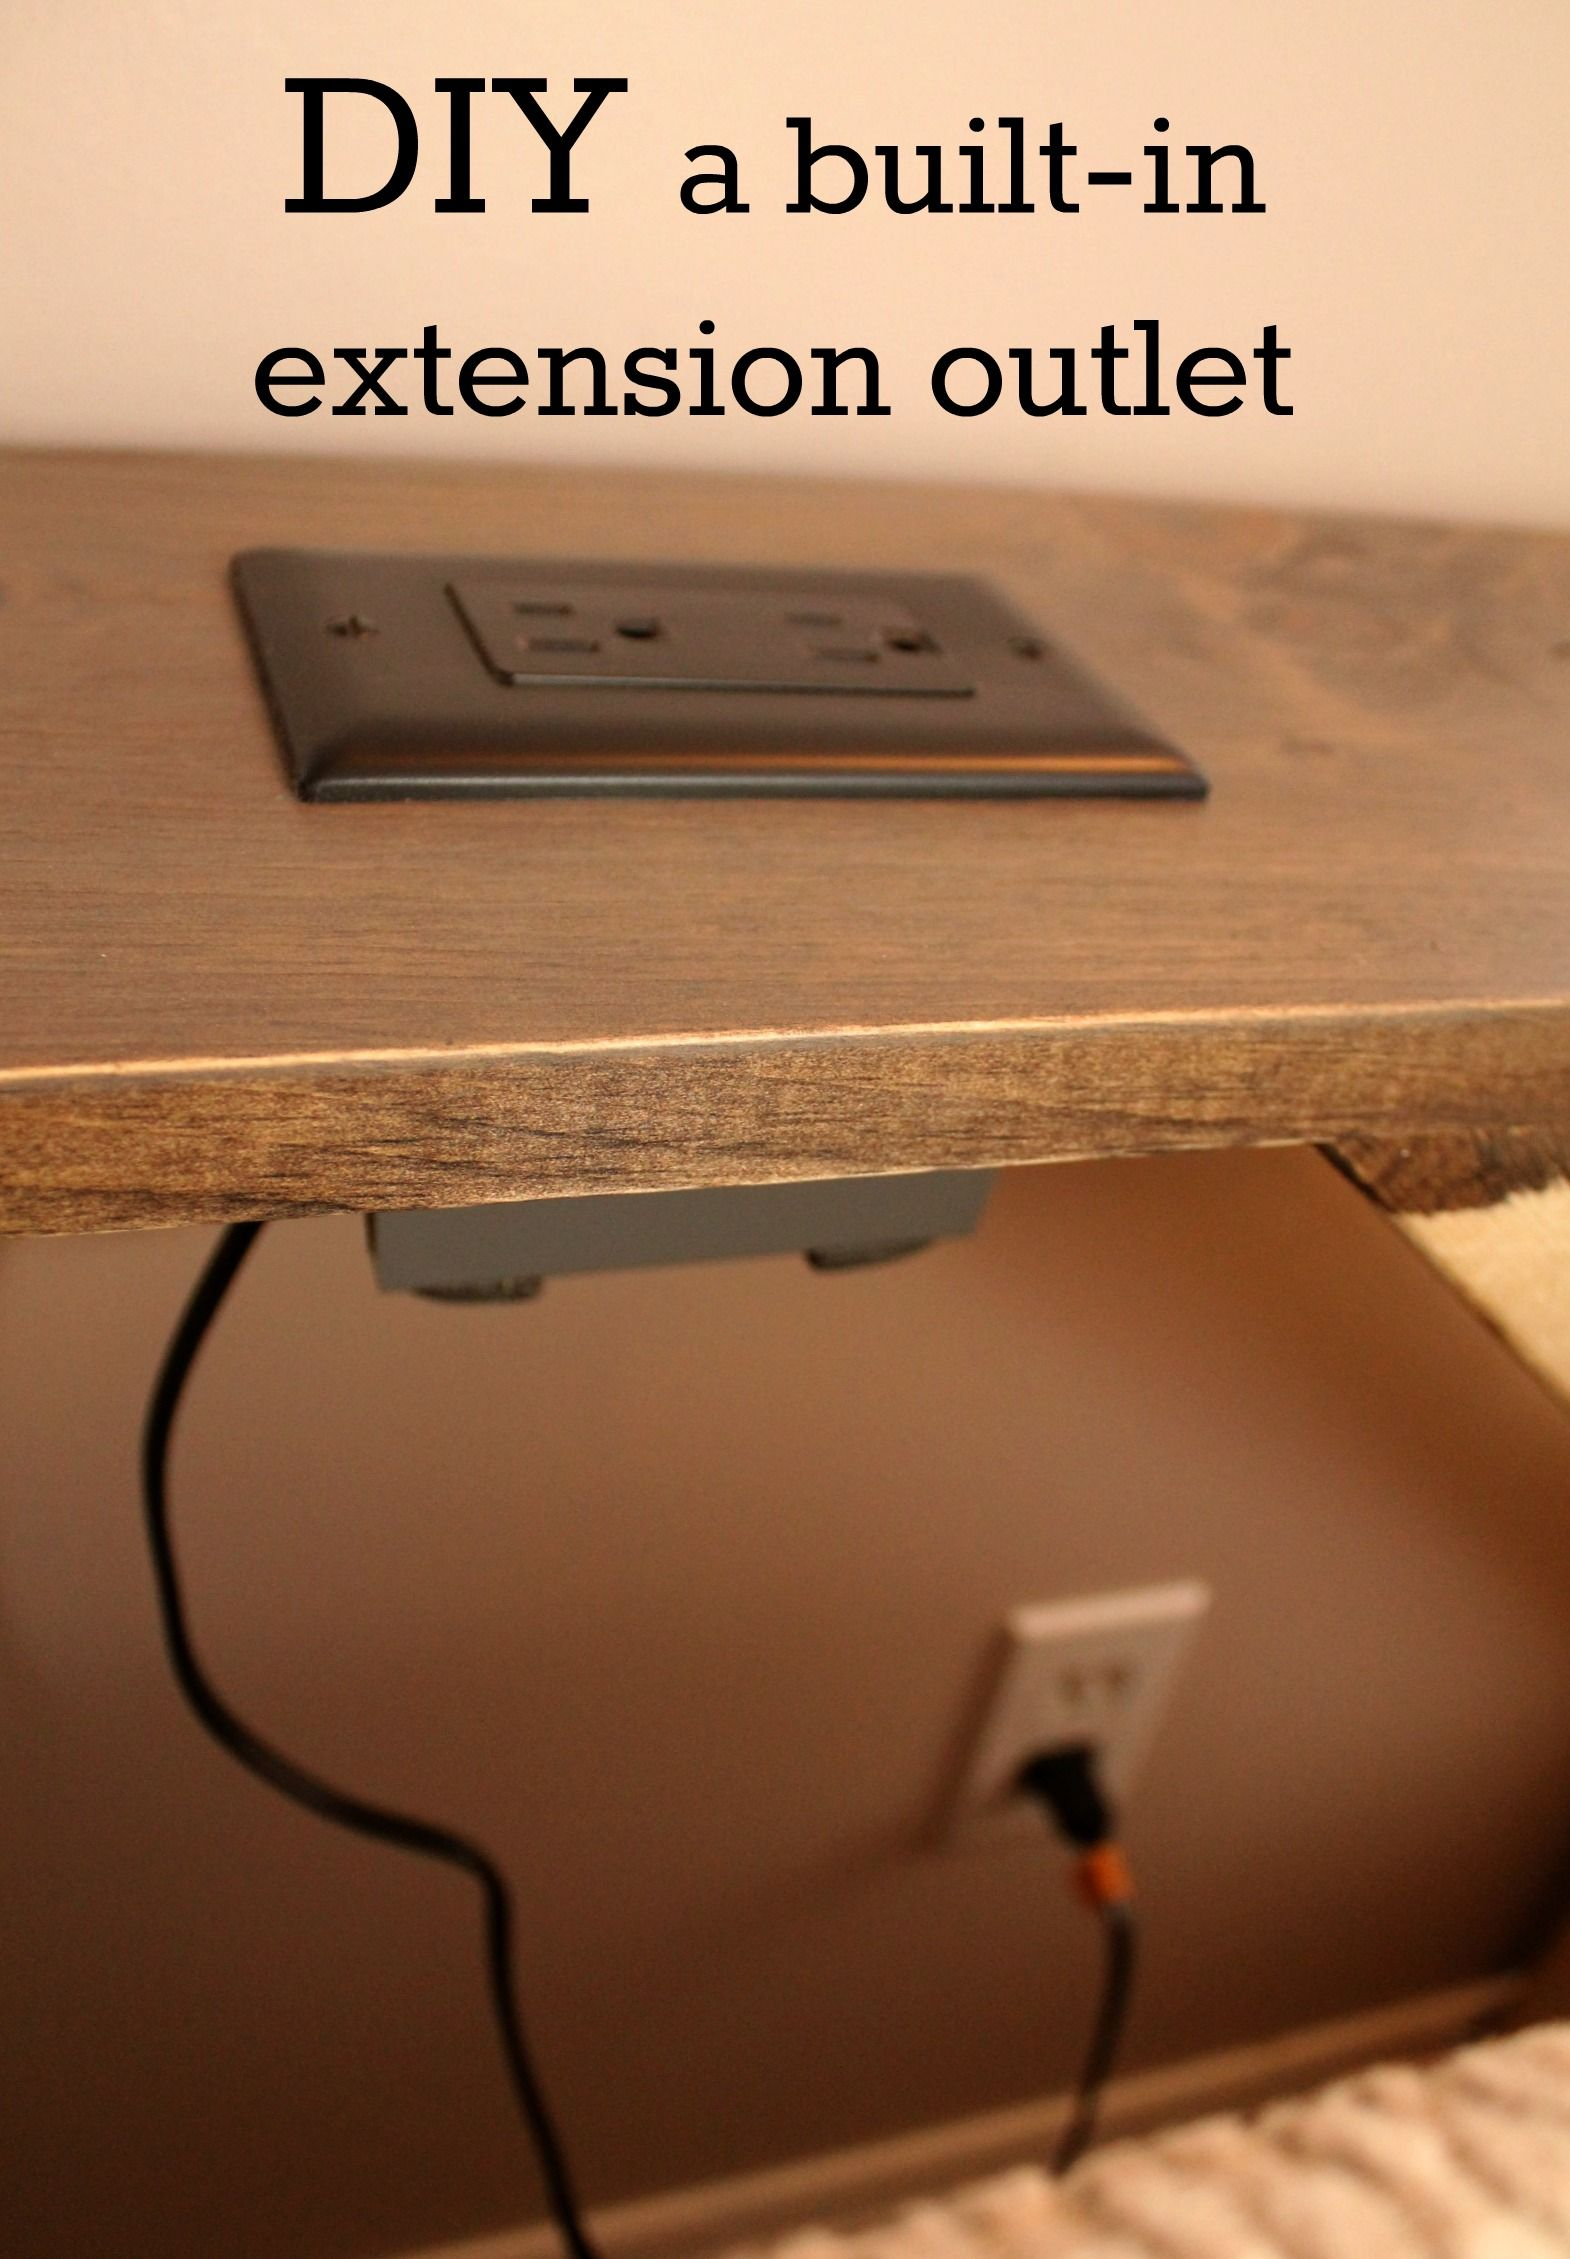 We Converted A Wall Outlet Into An Extension Outlet For Our Tv Room Sofa Table This Outlet Built Into The Face Of The Table Allows Us To Diy Home Behin